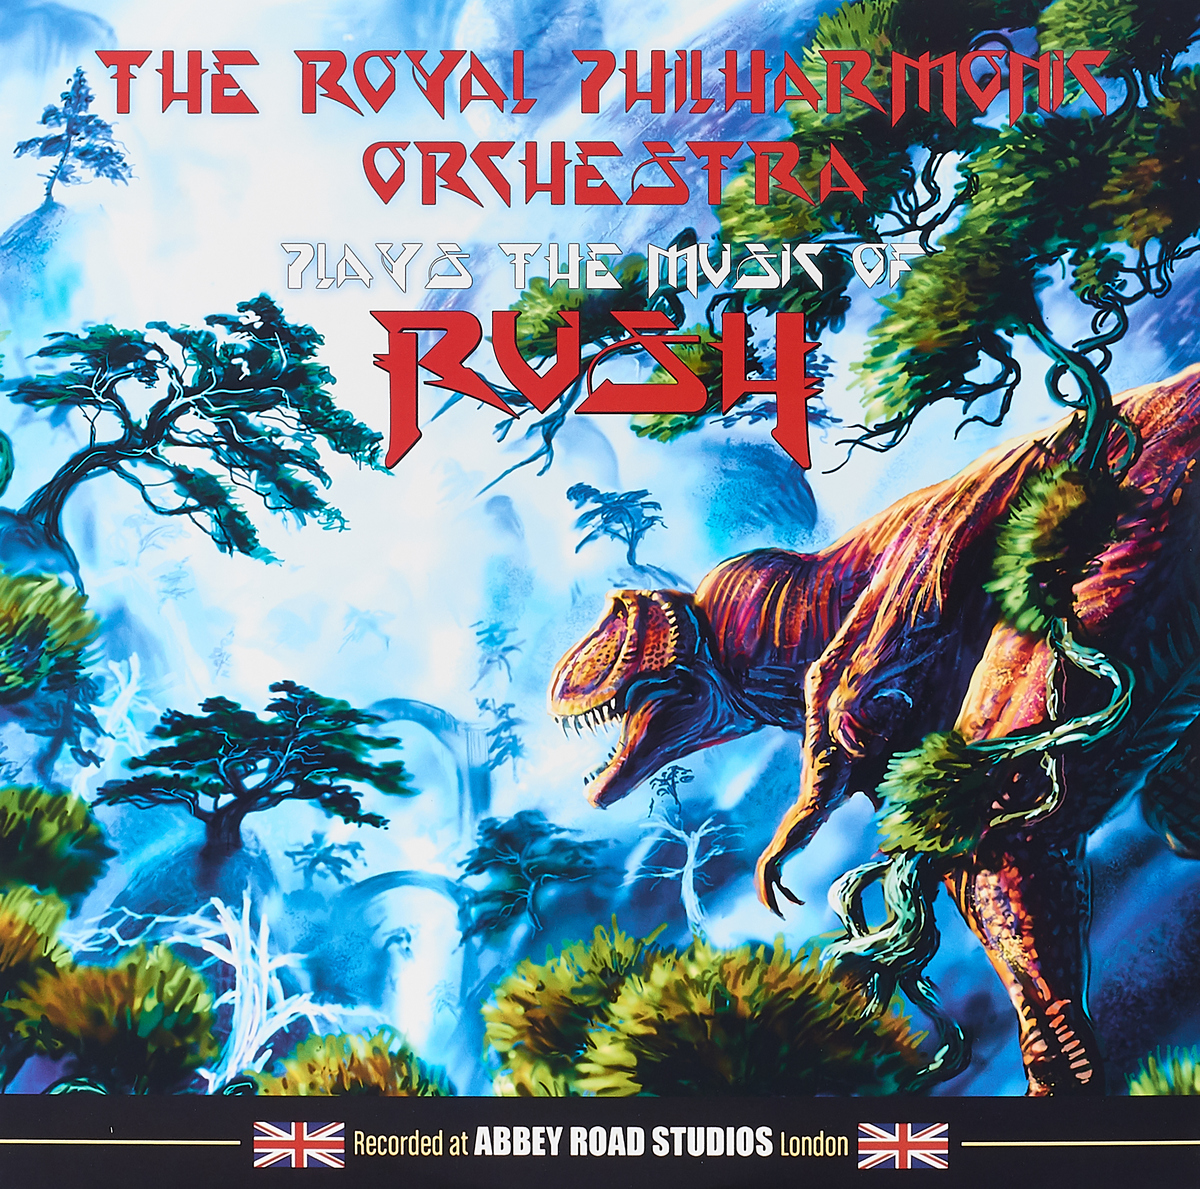 The Royal Philharmonic Orchestra The Royal Philharmonic Orchestra. Plays The Music Of Rush (LP) рени флеминг андреас делфс the royal philharmonic orchestra renee fleming saсred songs